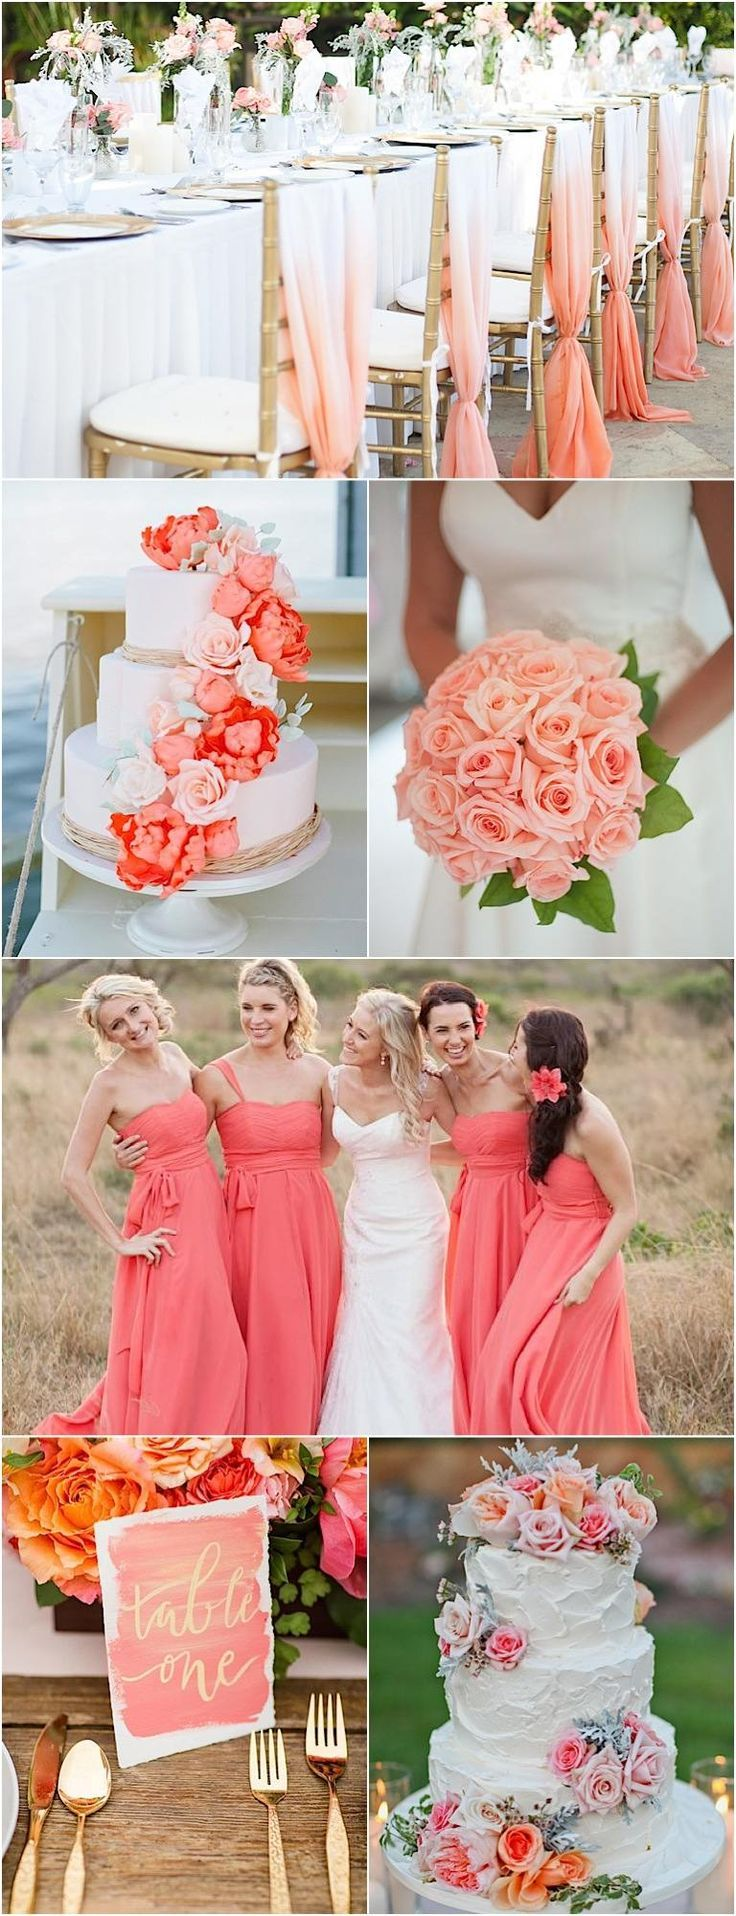 Design Coral Color Scheme best 25 coral color schemes ideas on pinterest inspiration perfect and gold wedding ideas